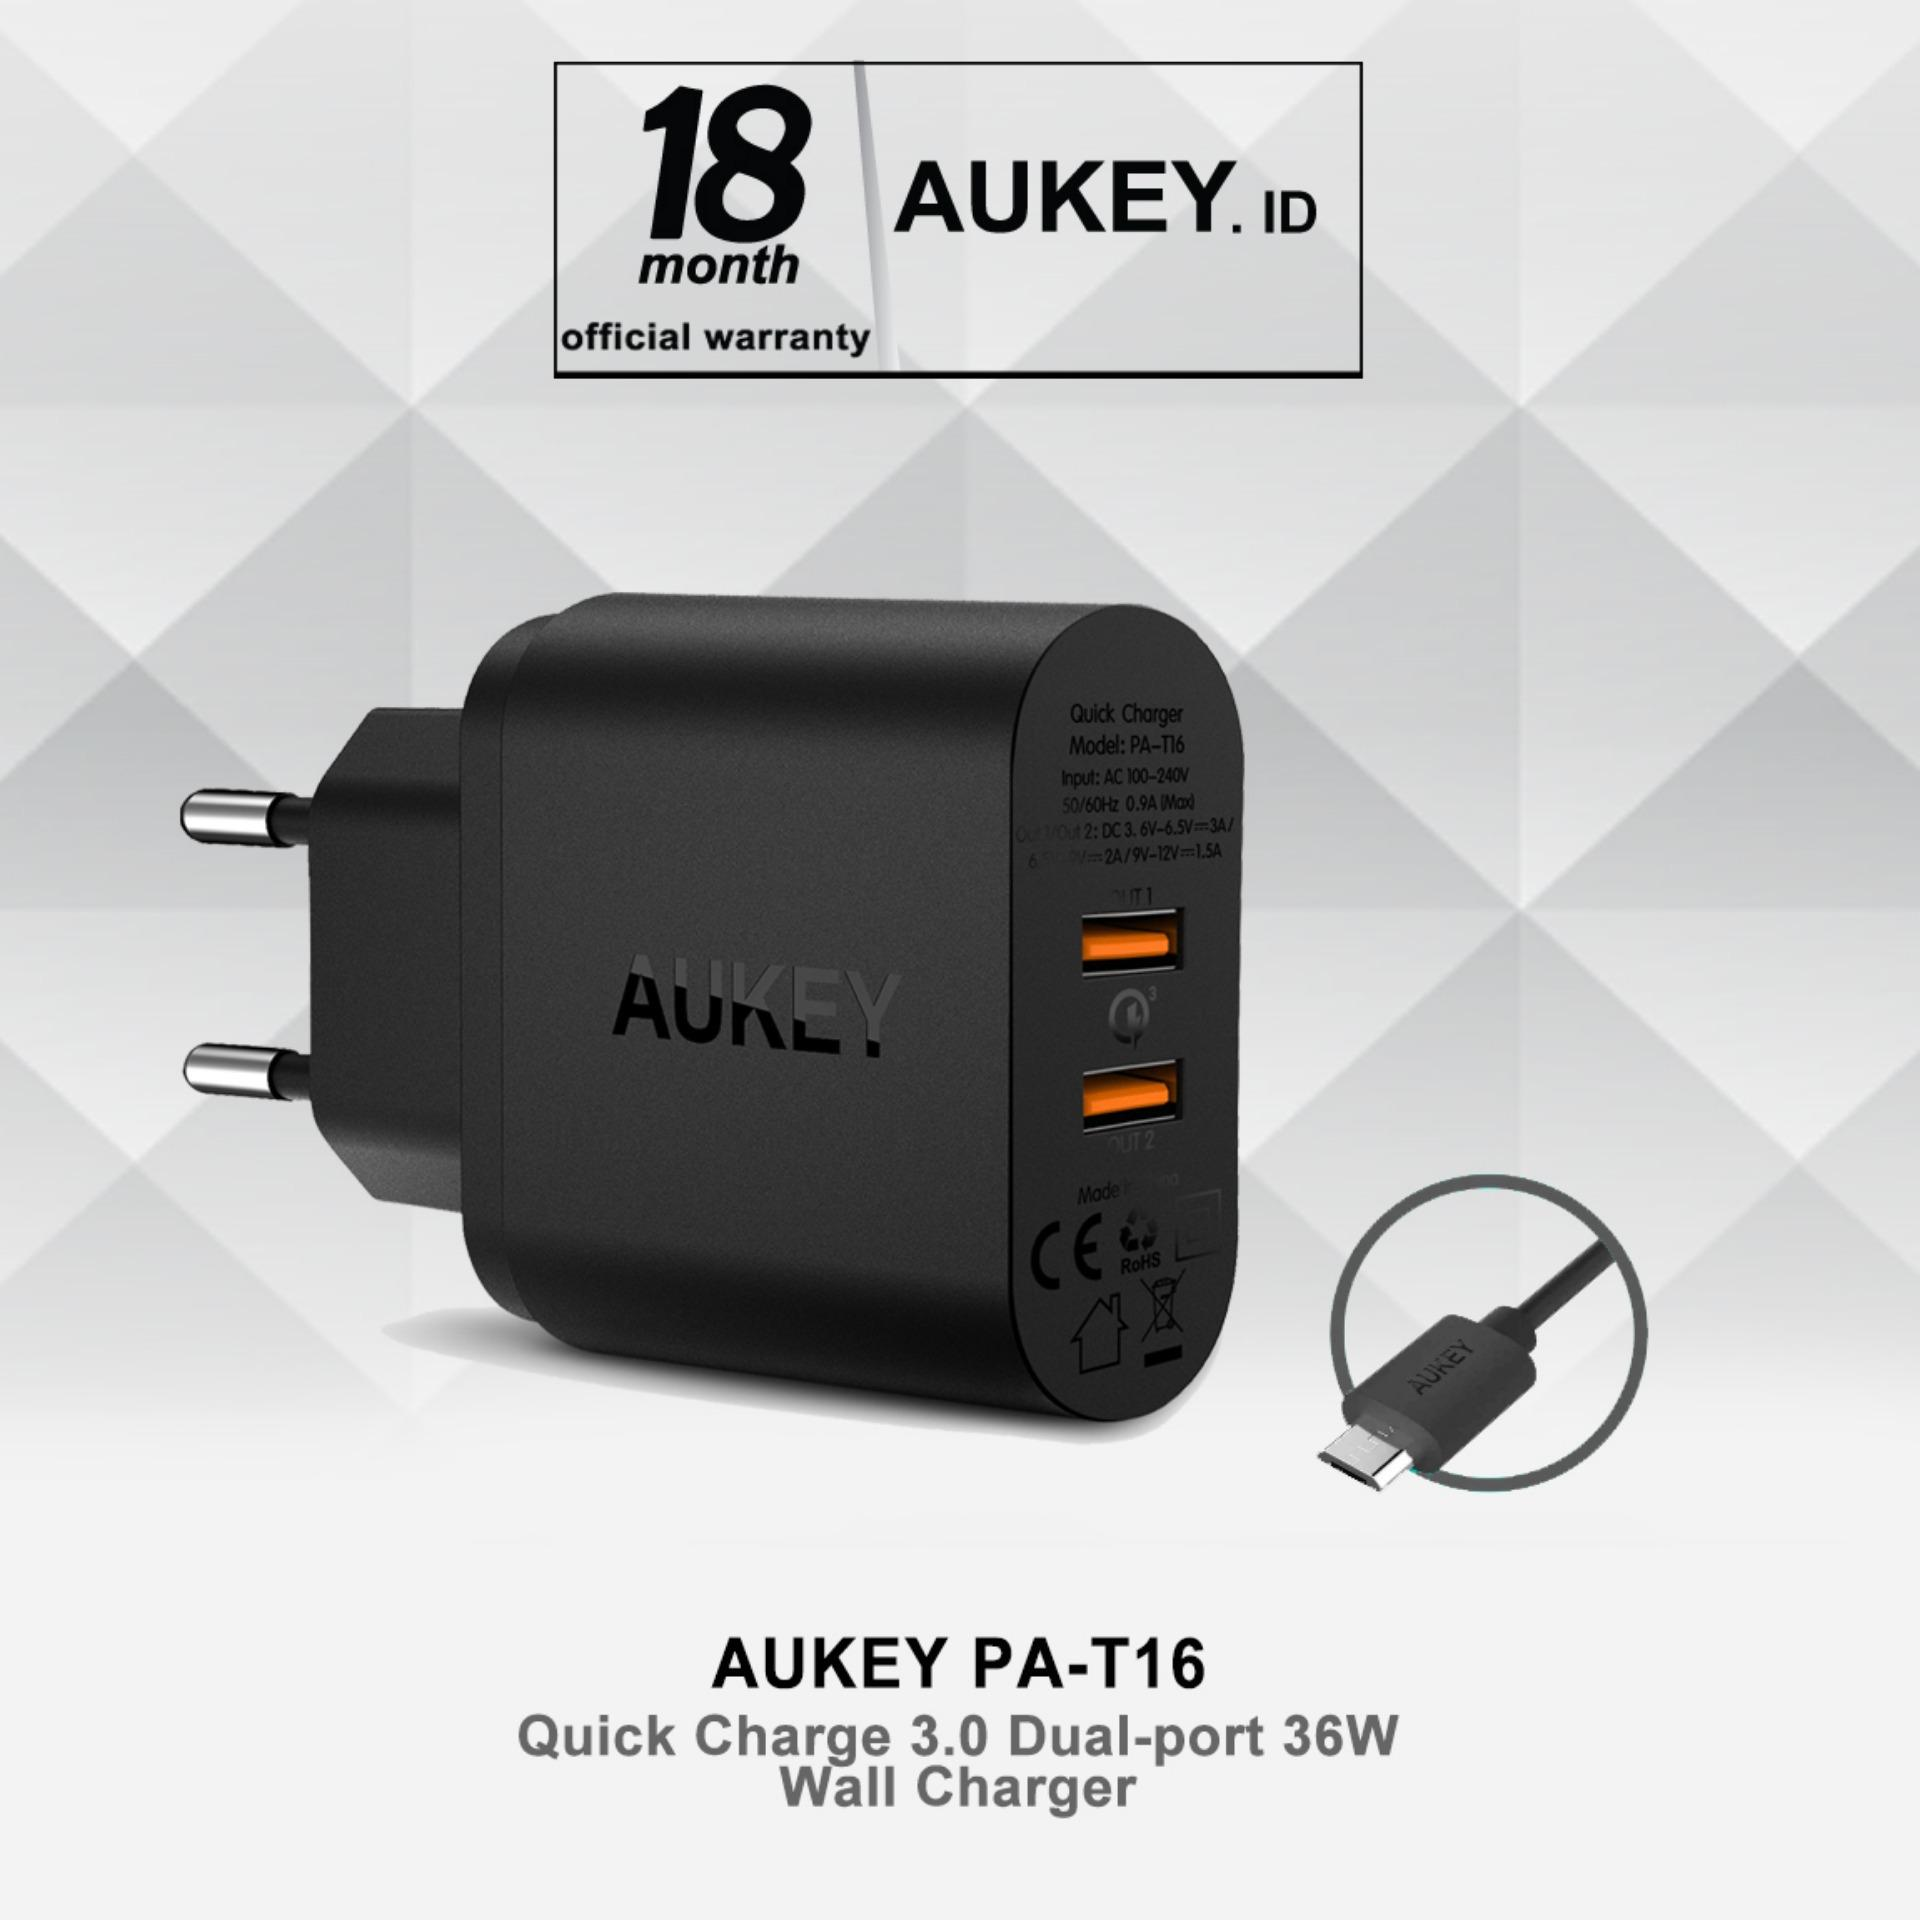 Jual Aukey Pa T16 36W 2 Port Usb Wall Charger With Quick Charge 3 Hitam Di Bawah Harga